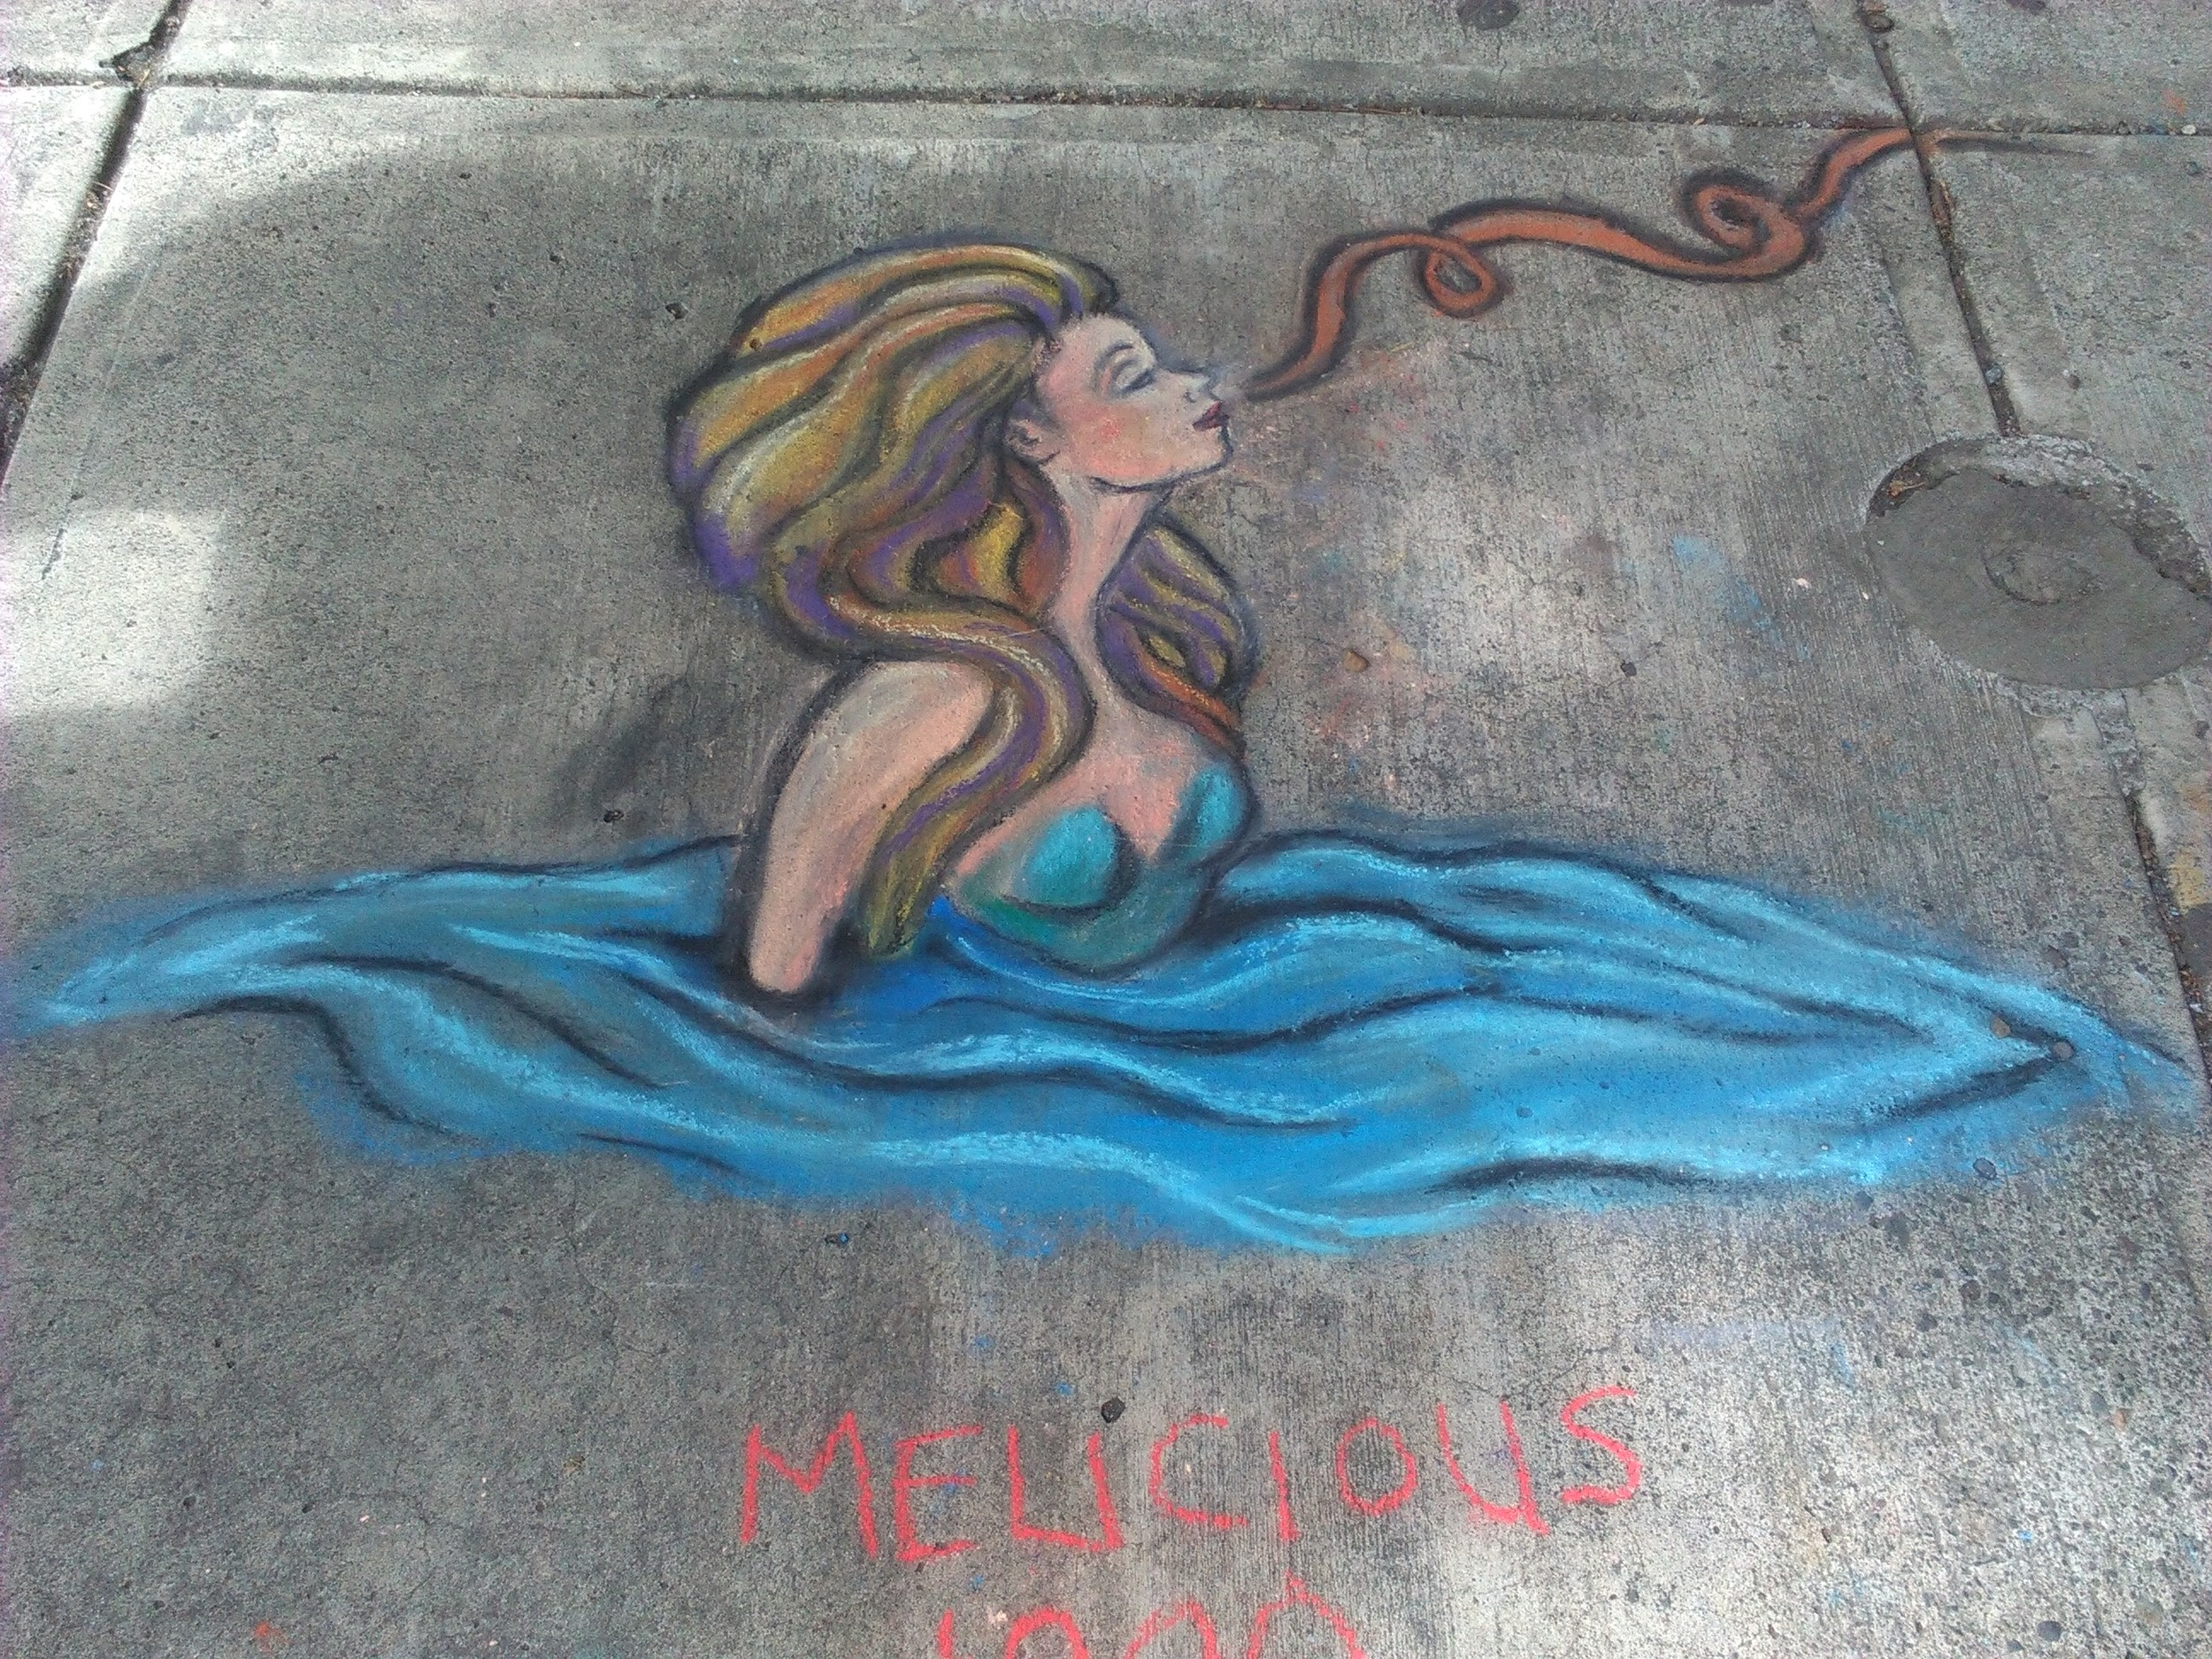 The 2nd drawing where the mermaid sniffs something delicious in the air. Near NW 5th and Couch.